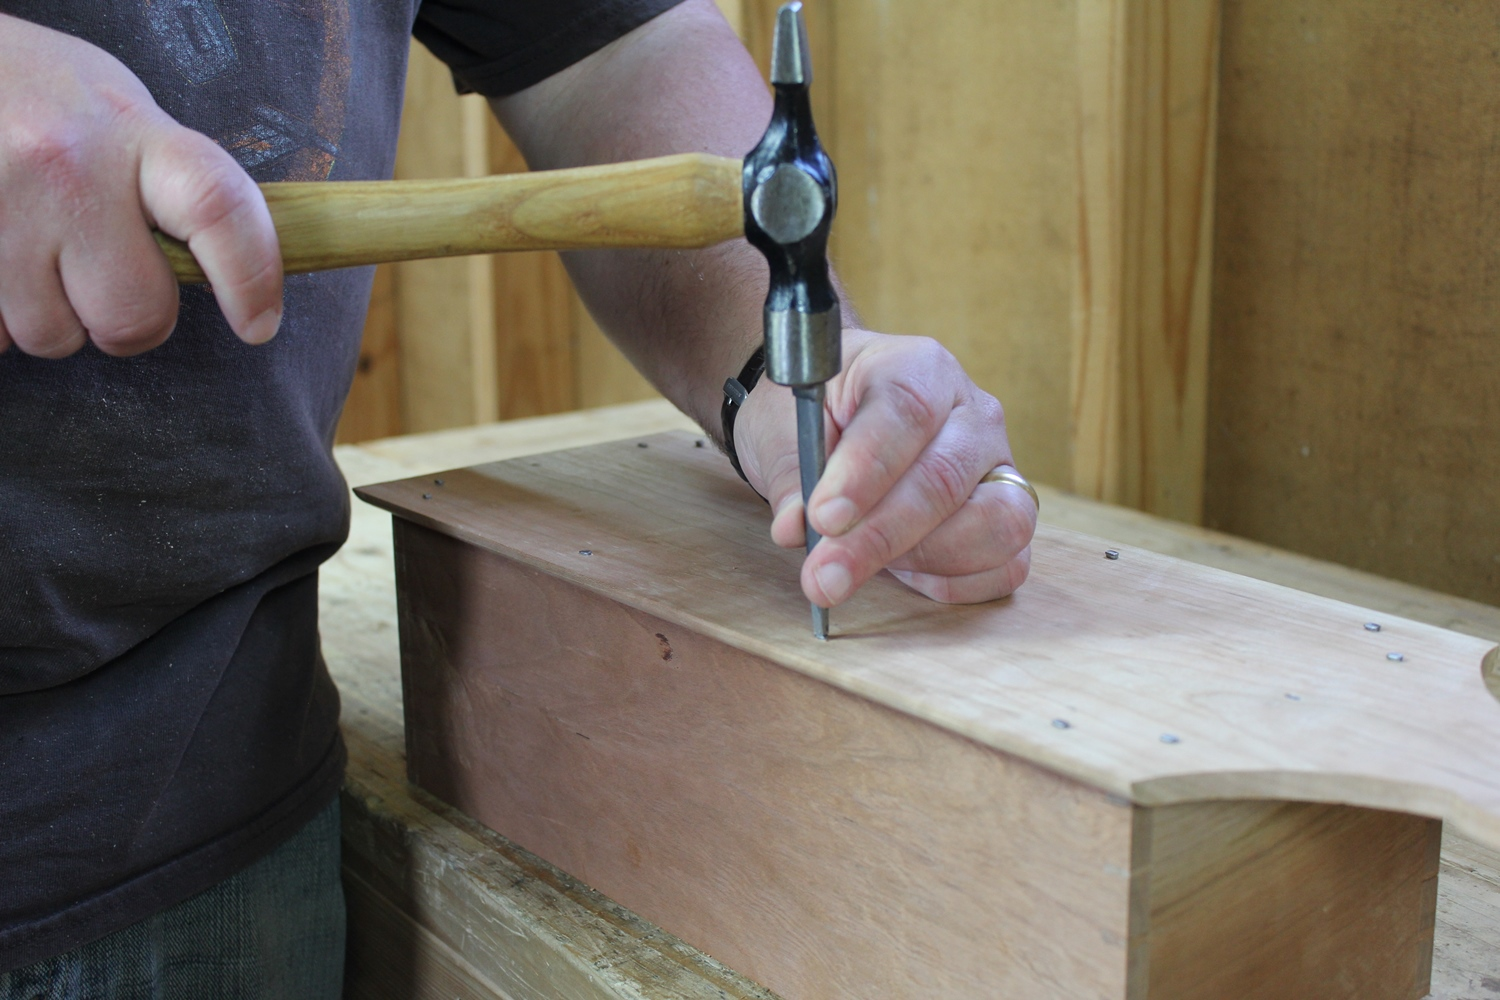 Setting the finish nails